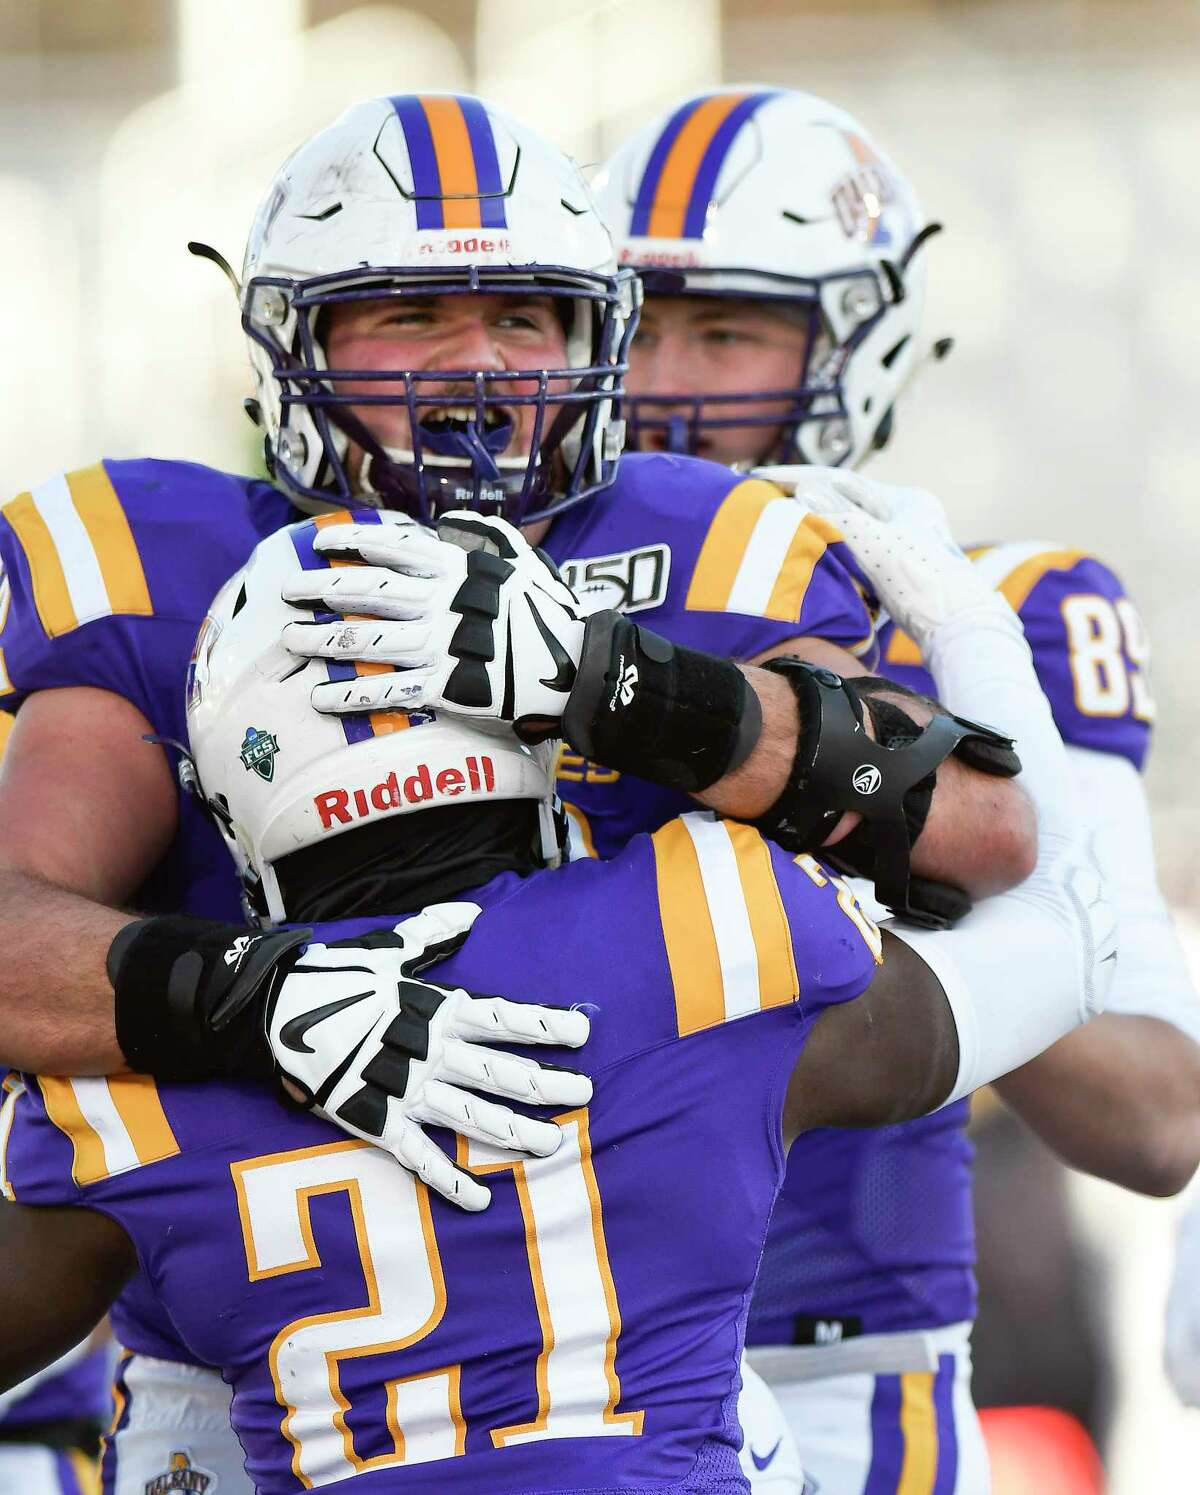 University at Albany running back Karl Mofor (21) celebrates his touchdown with teammate offensive lineman Griffin Clancy (72) during the first half of an NCAA football game against New Hampshire Saturday, Nov. 16, 2019, in Albany, N.Y. University at Albany won the game 24-17.